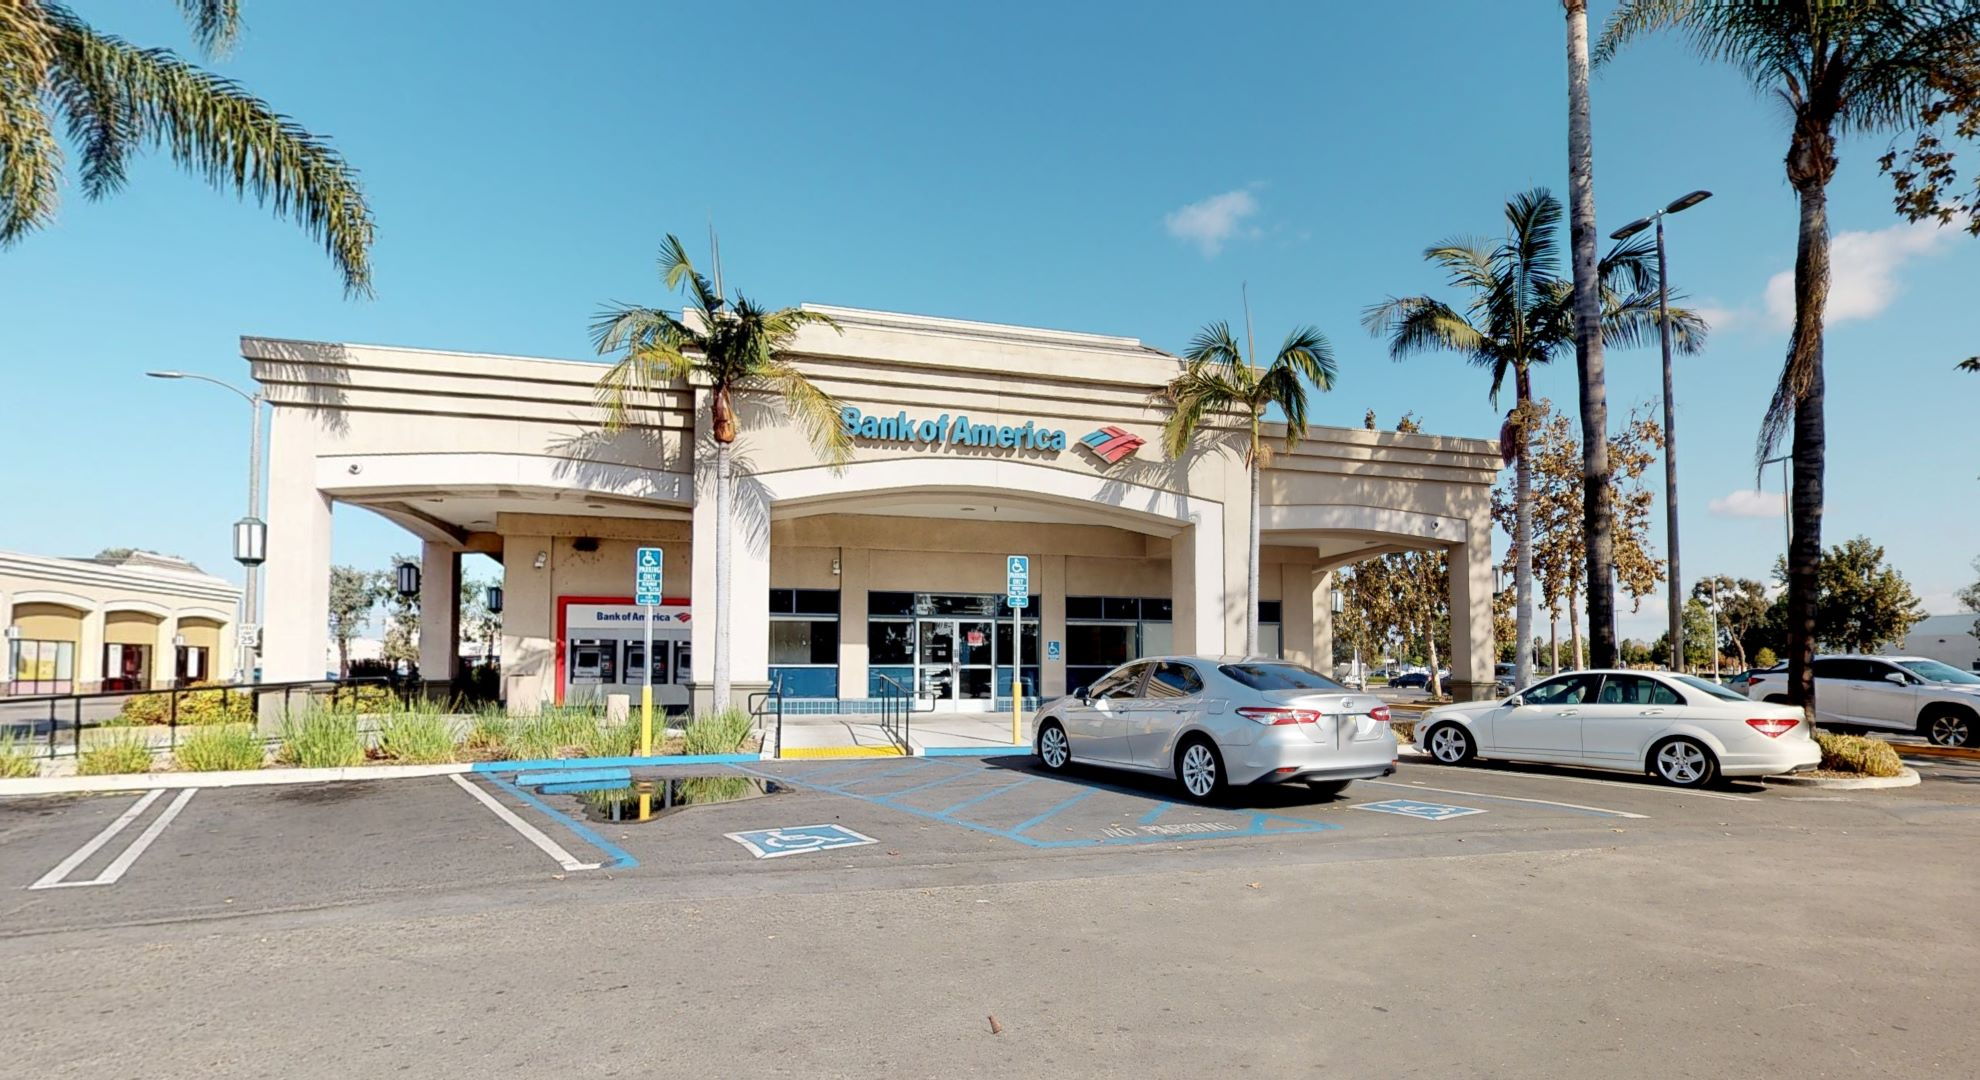 Bank of America financial center with drive-thru ATM | 4705 Silva St, Lakewood, CA 90712